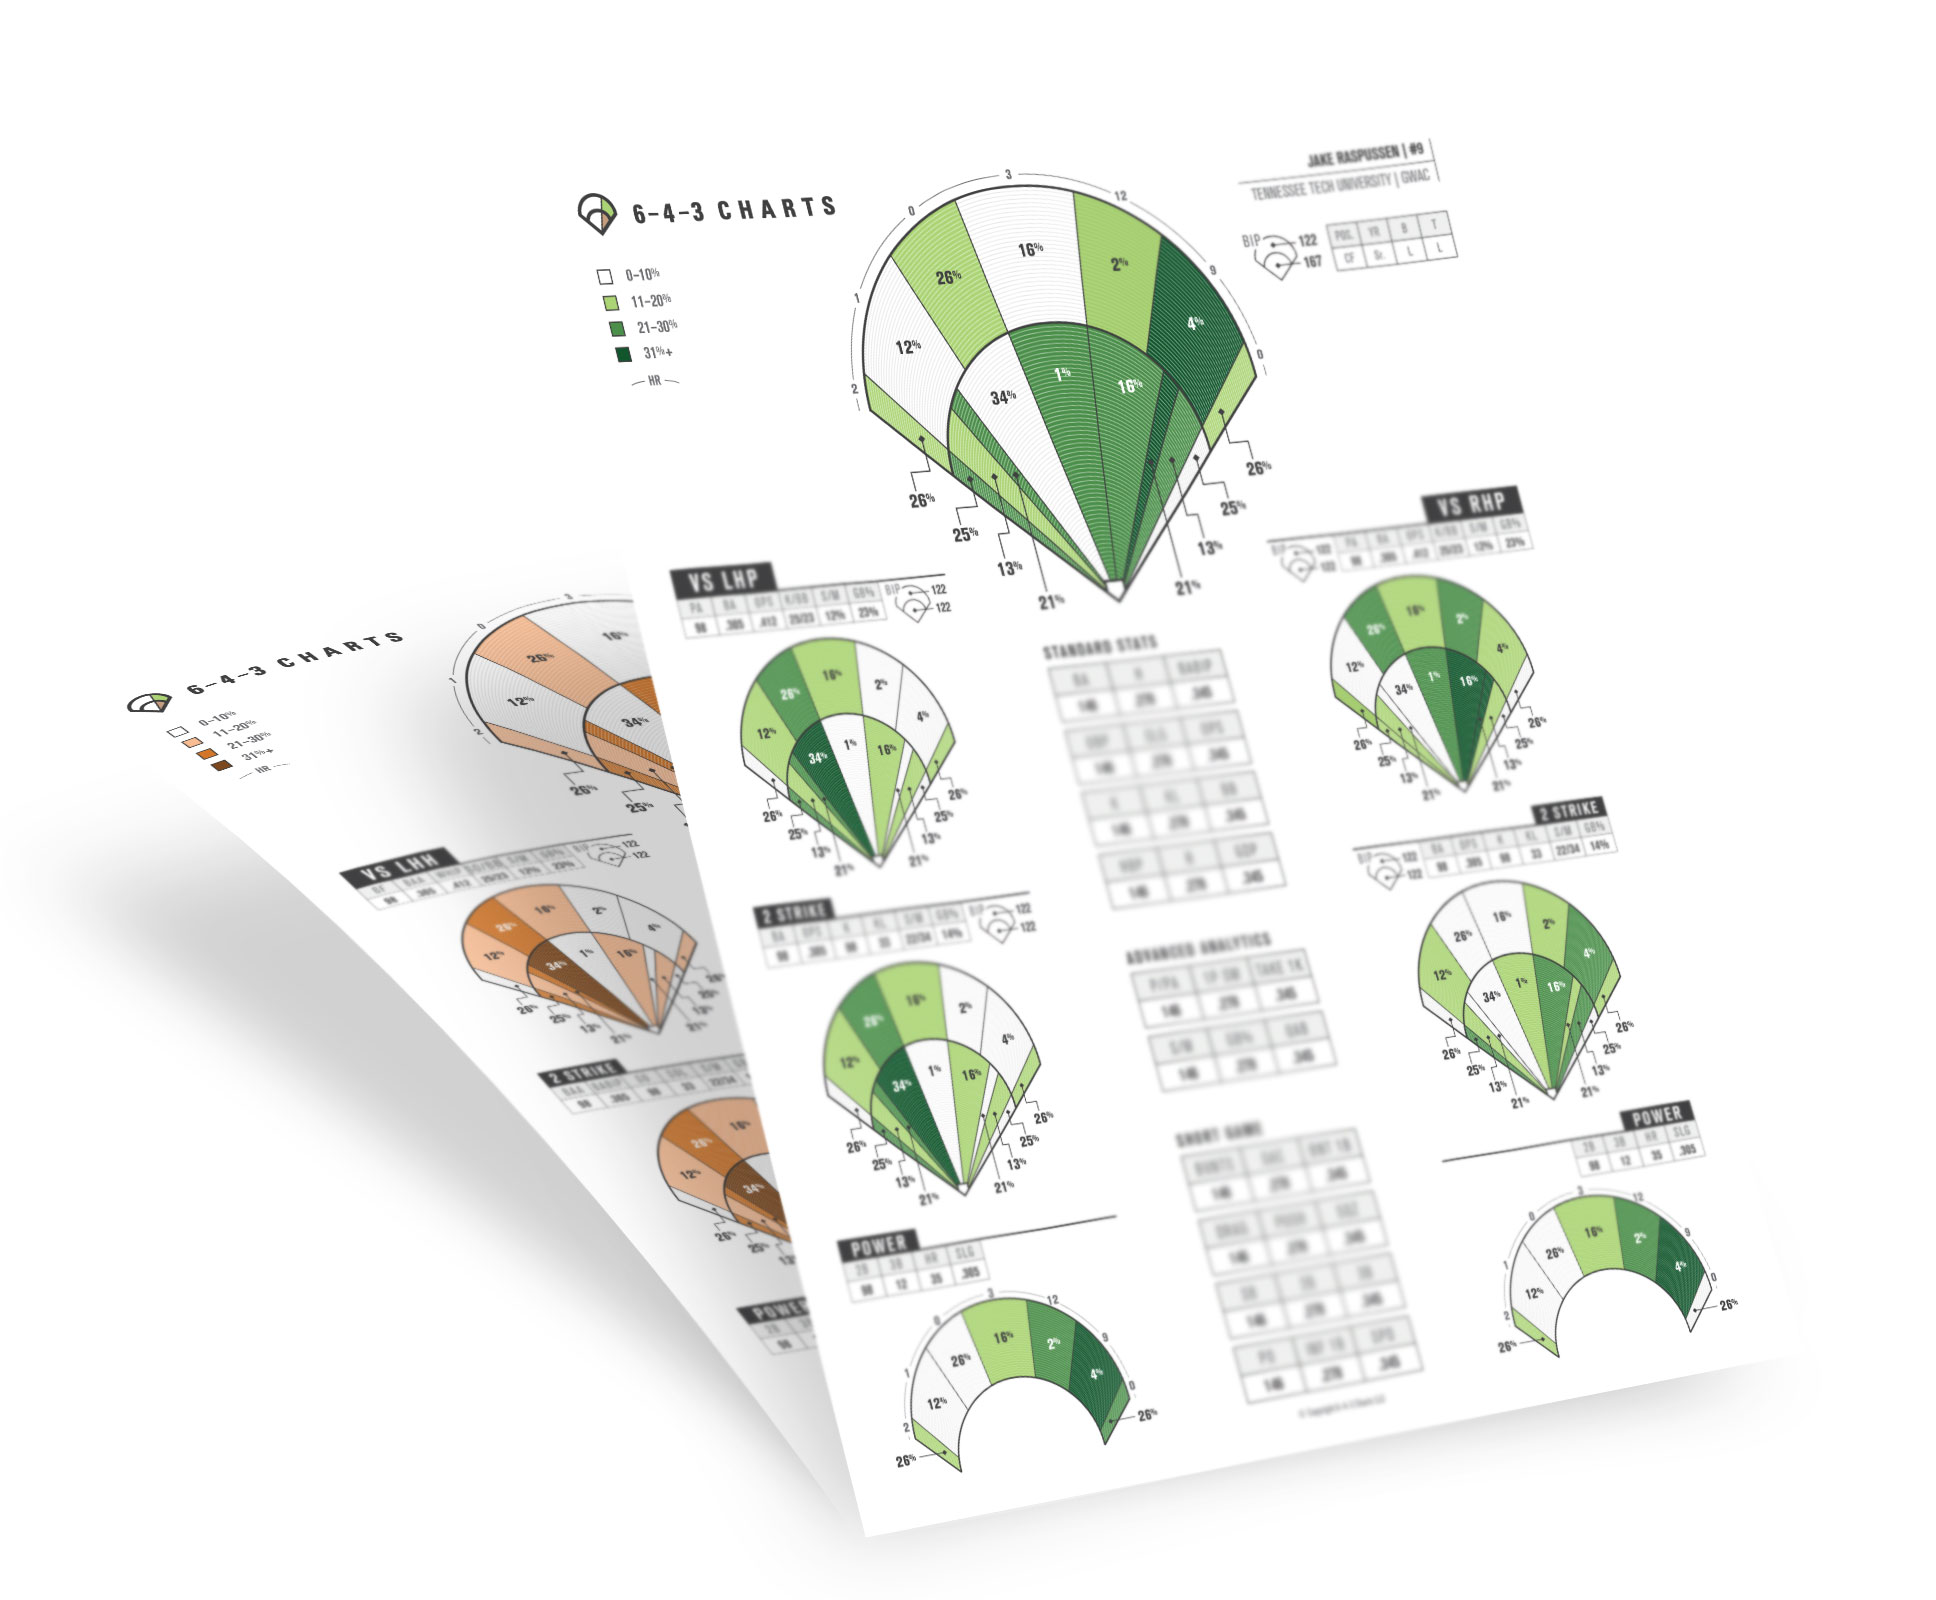 graphic about Baseball Spray Charts Printable called House 643 Charts